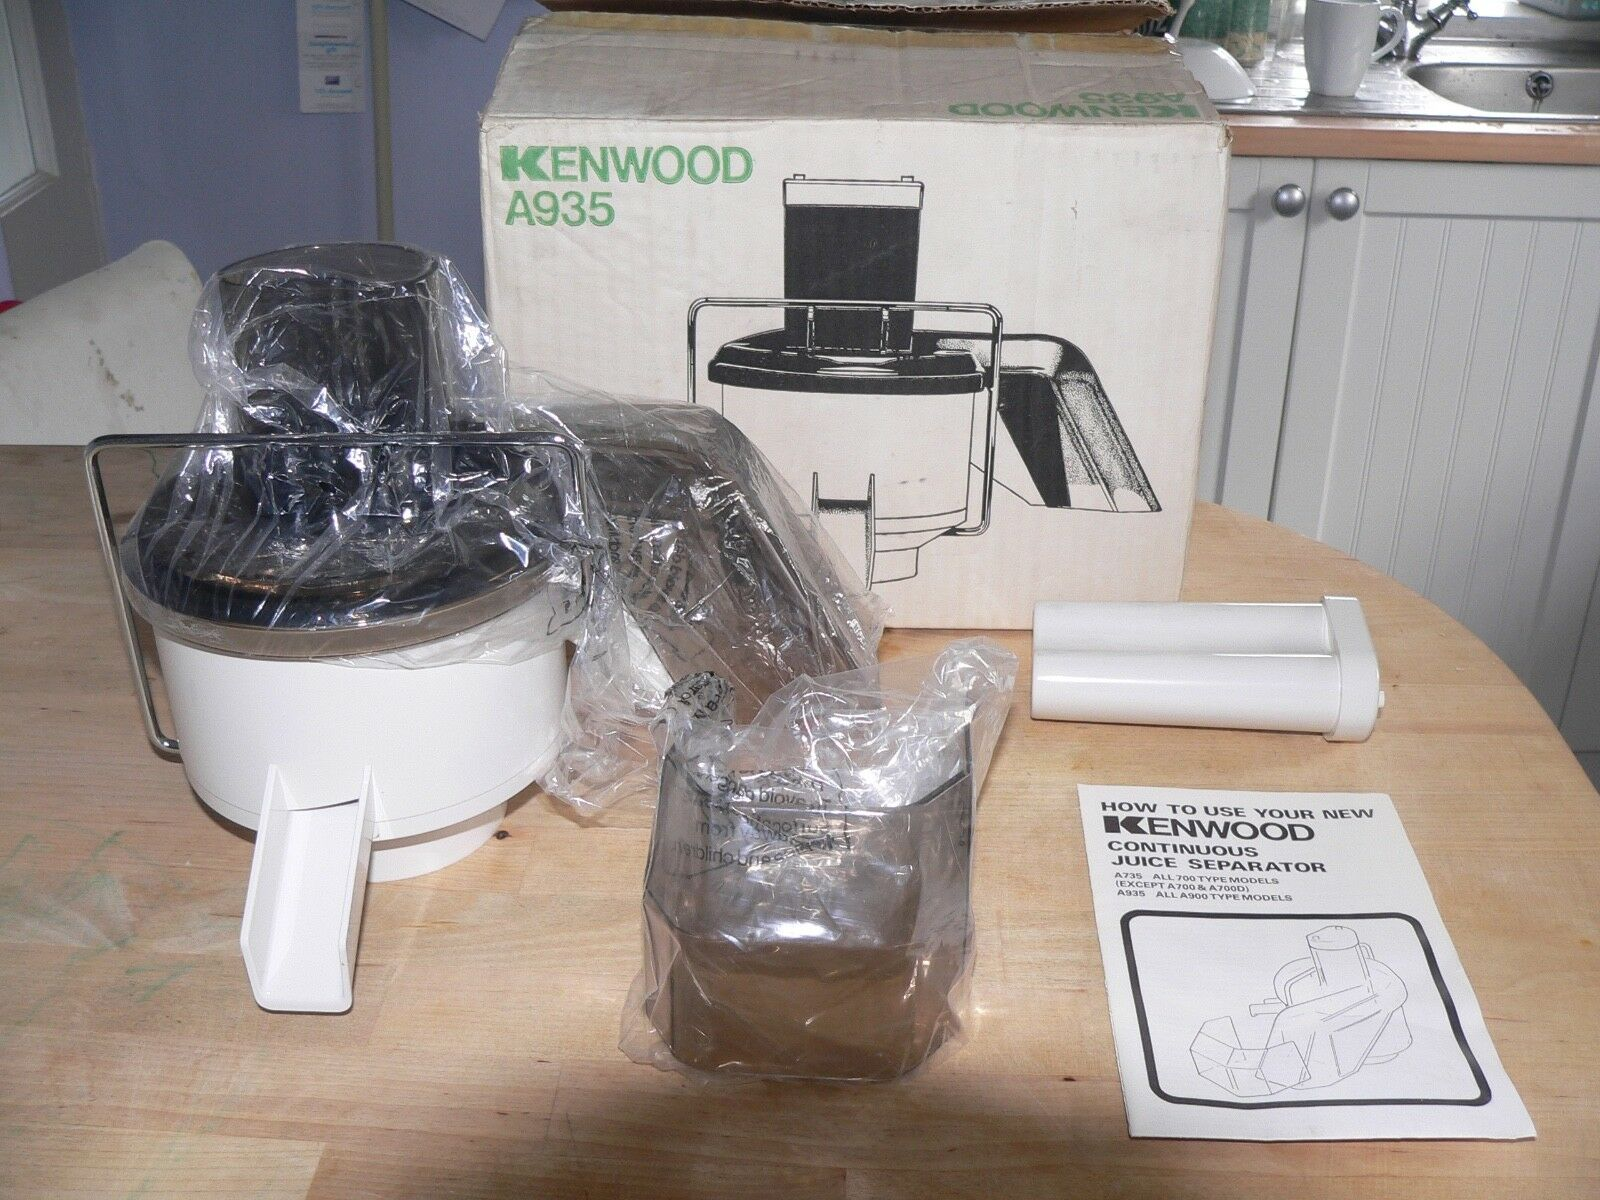 KENWOOD CHEF - Continuous Juice Separator - A935  (Fits 901 & KM). Excellent con